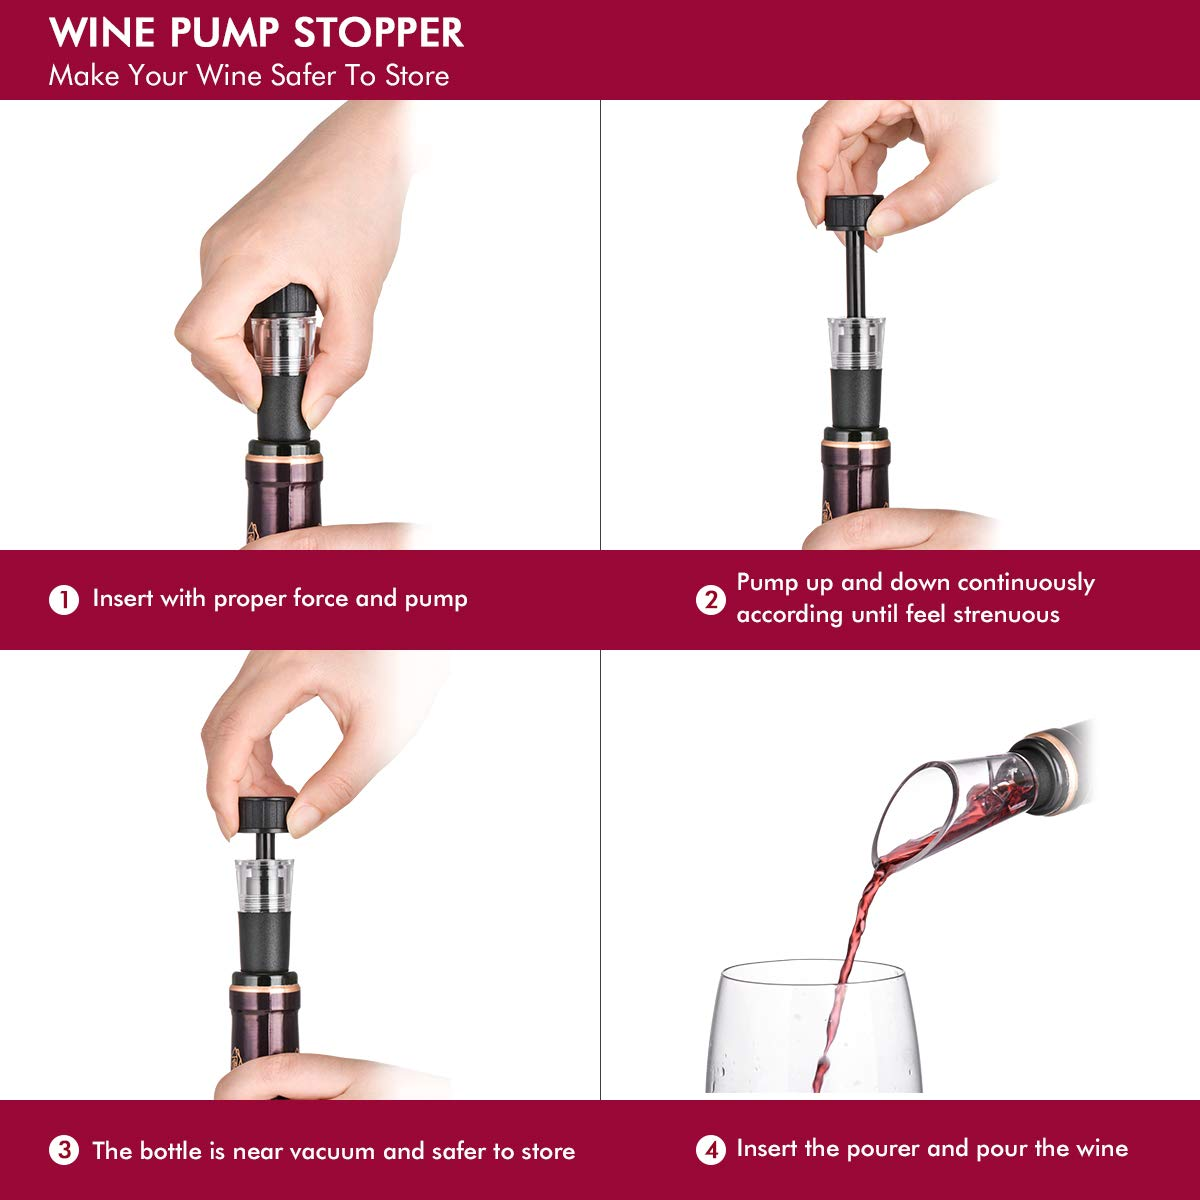 Wine Bottle Opener Air Pressure Wine Cork Remover Pump Wine Opener Wine Pump Wine Accessory Tool Handheld Wine Bottle Opener with Wine Pourer,Foil Cutter and Vacuum Stopper(Gift Box) by XCSOURCE (Image #4)